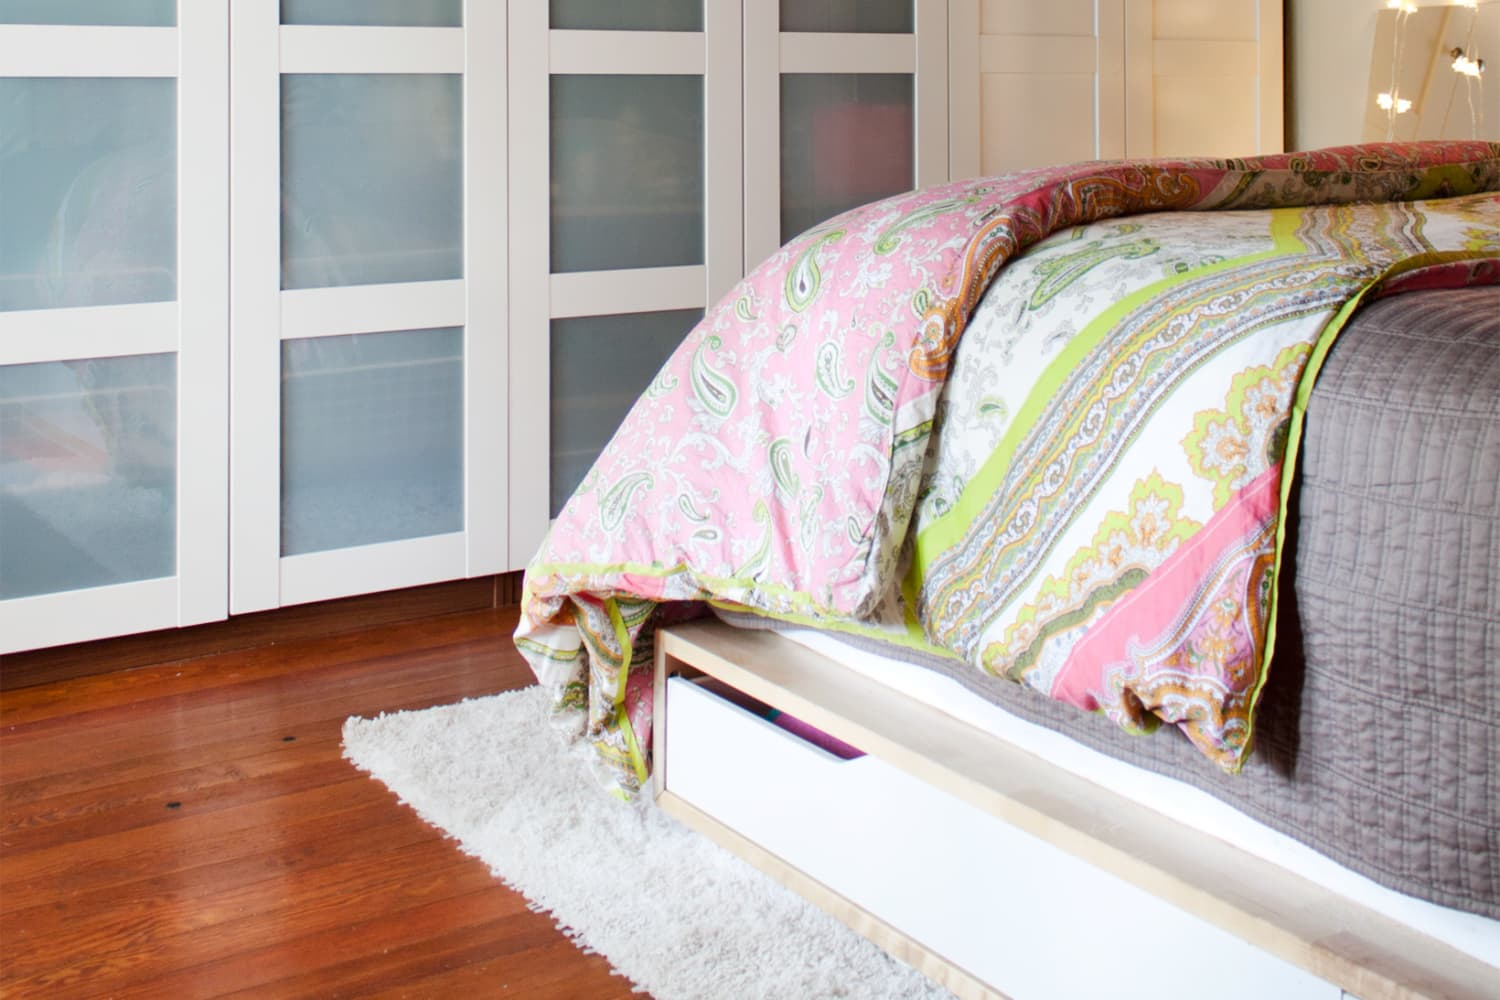 Tips Tricks For Smart Storage Of Off Season Items Apartment Therapy